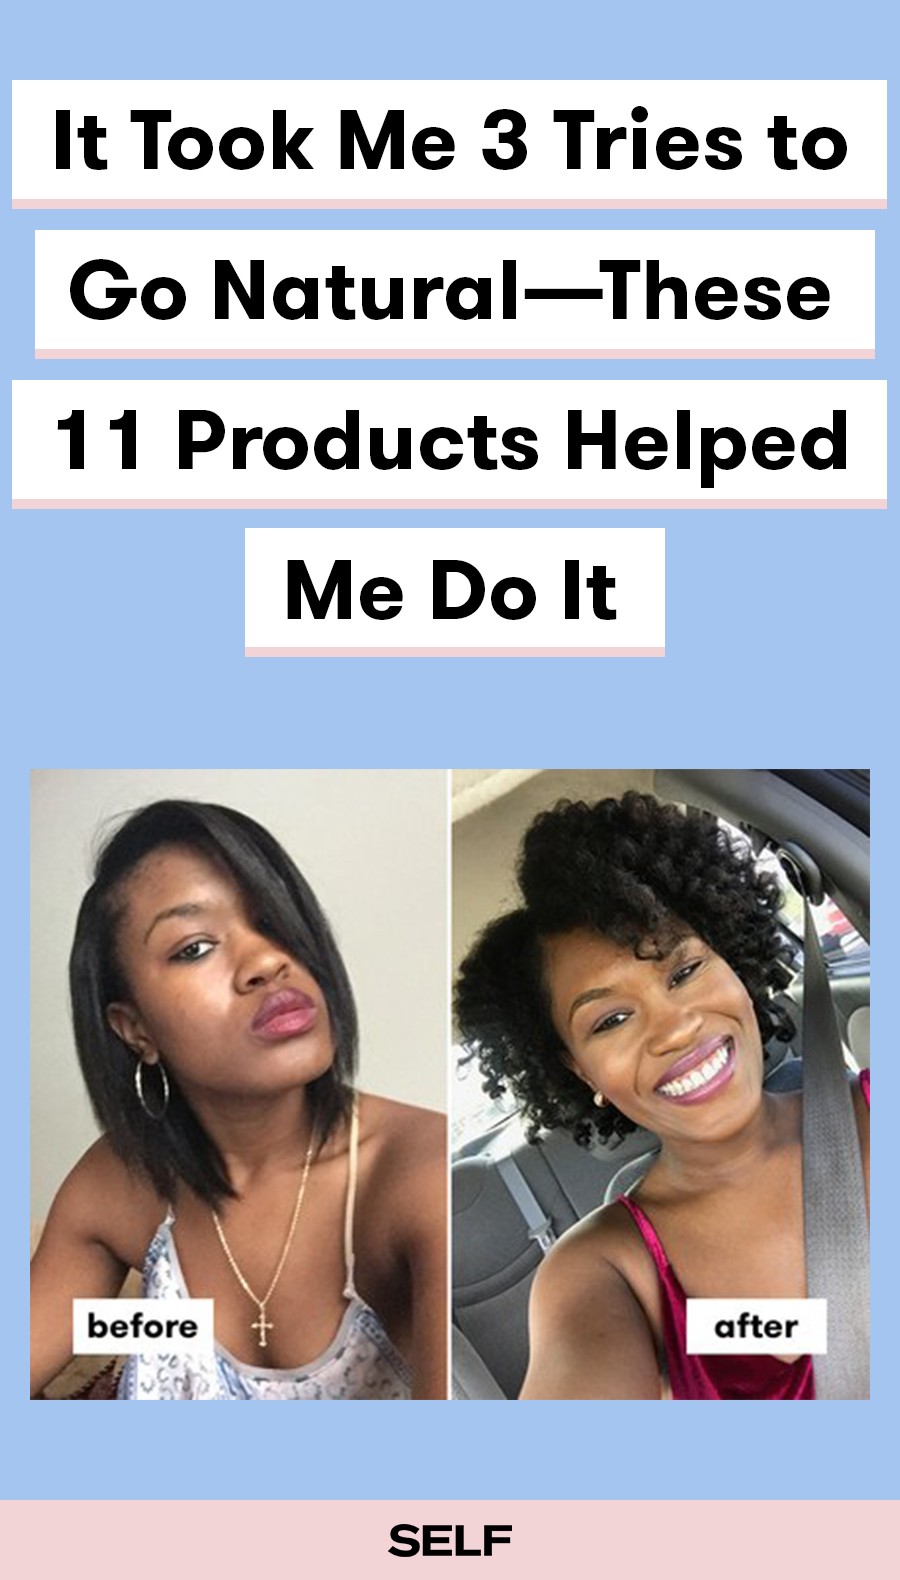 It took me tries to go naturaluthese products helped me do it